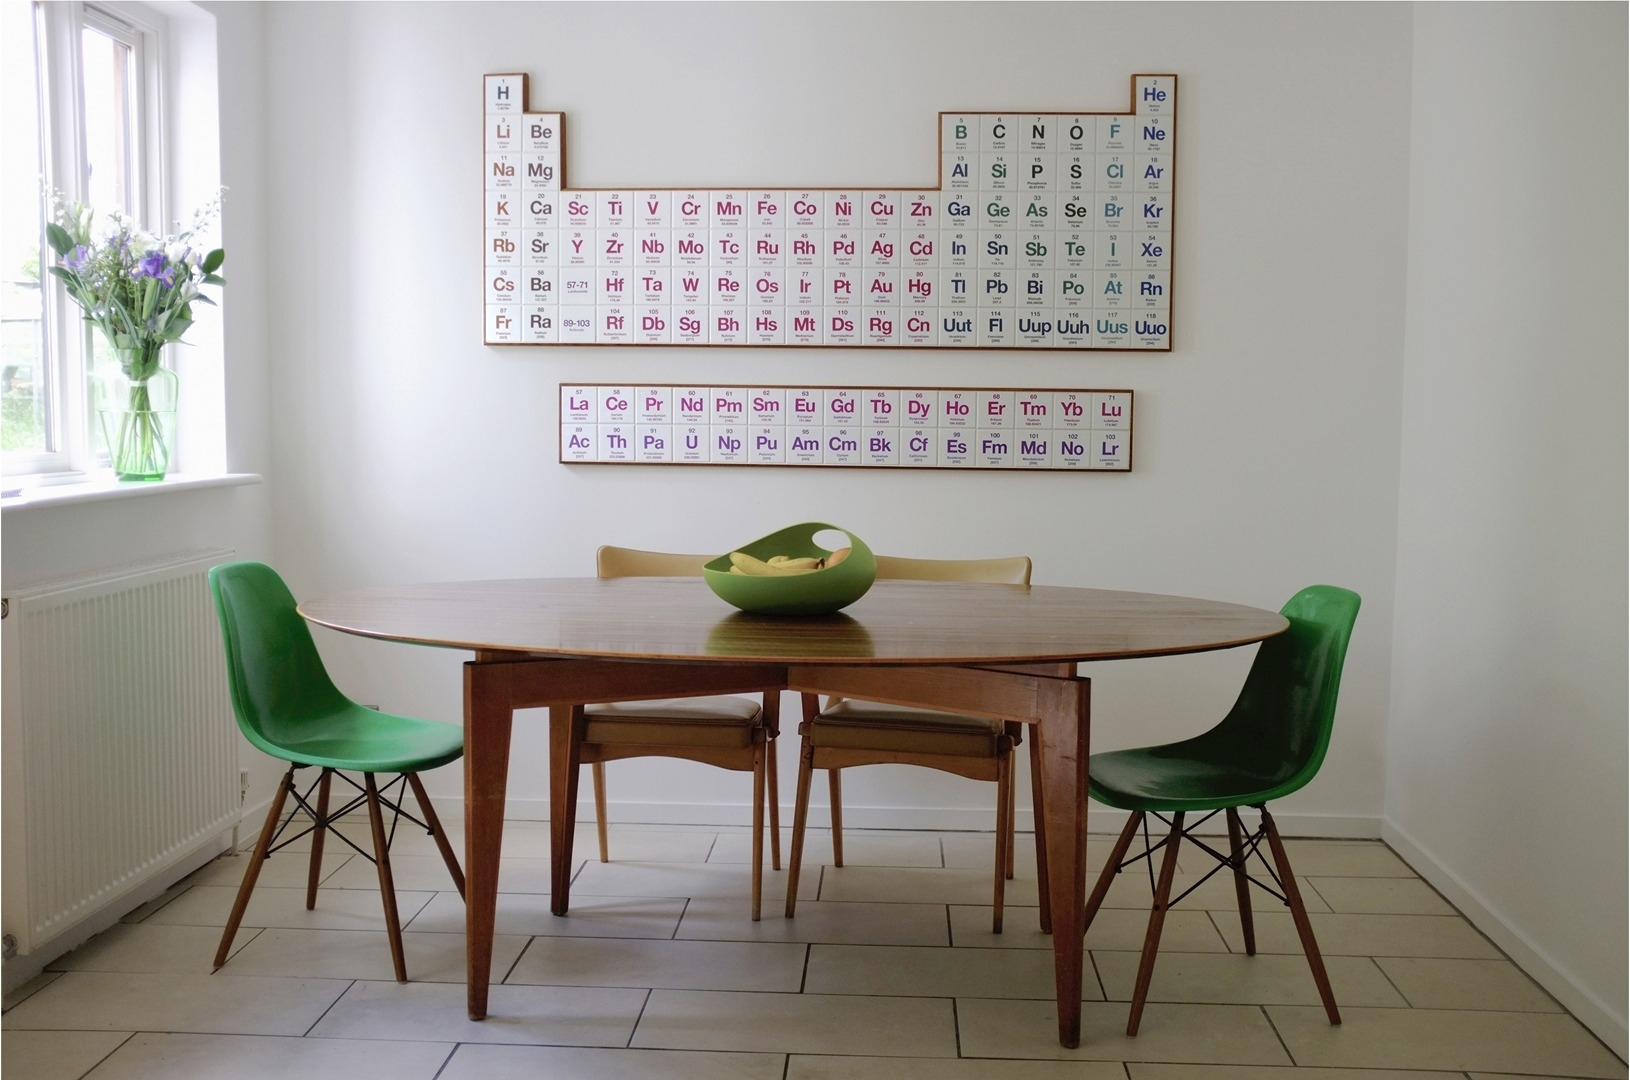 Periodic Table | Higgs & Crick With Regard To Most Current Periodic Table Wall Art (View 18 of 20)